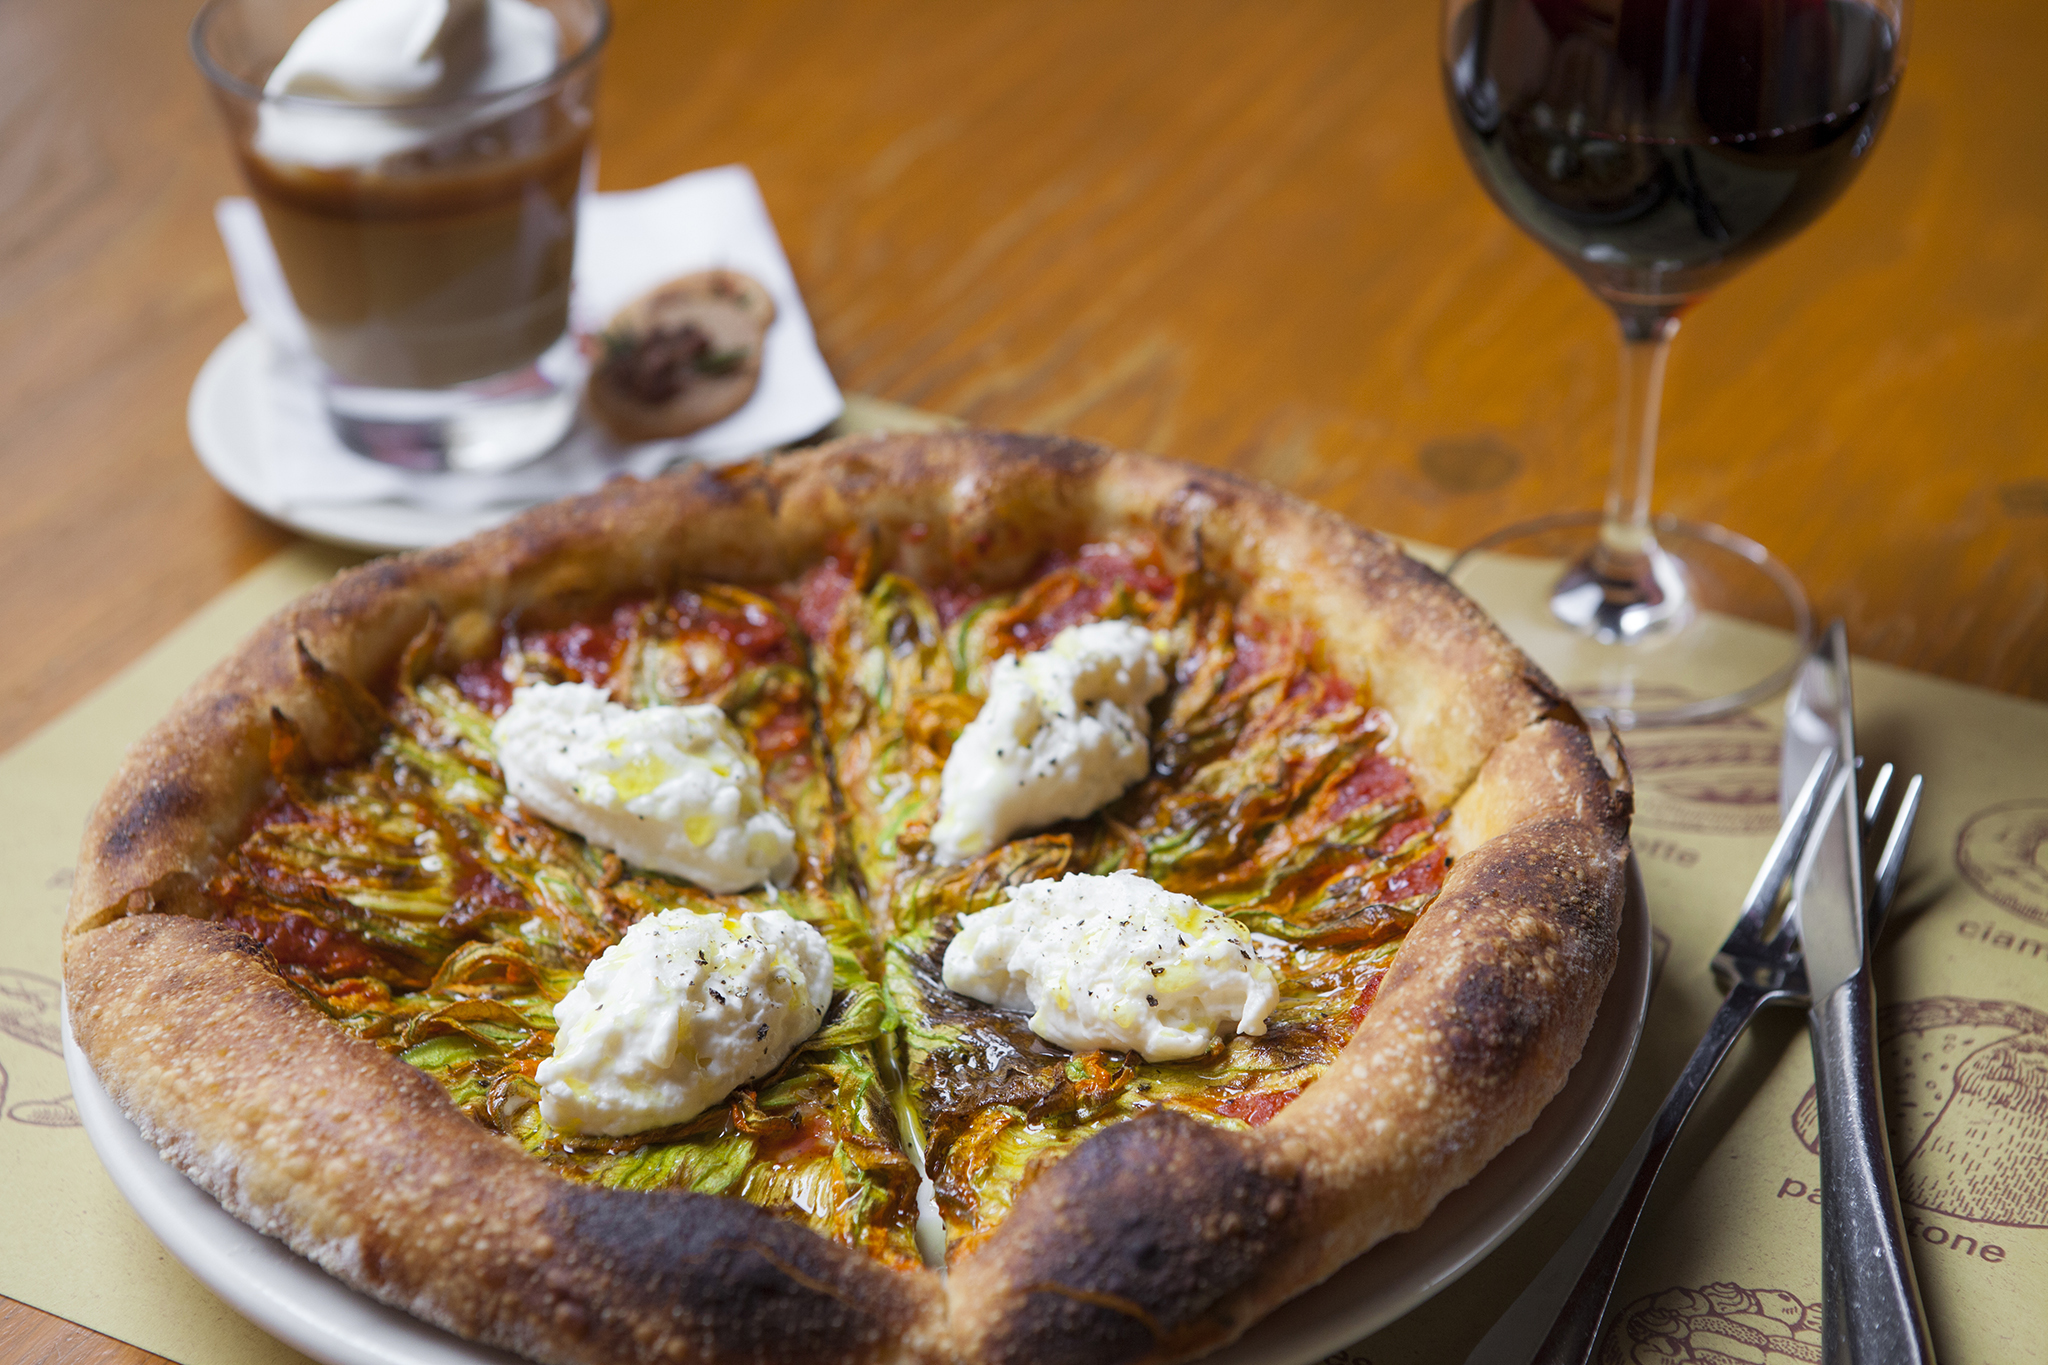 20 Bar Special Tomato And Burrata Pizza Gl Of Wine Erscotch Buddino At